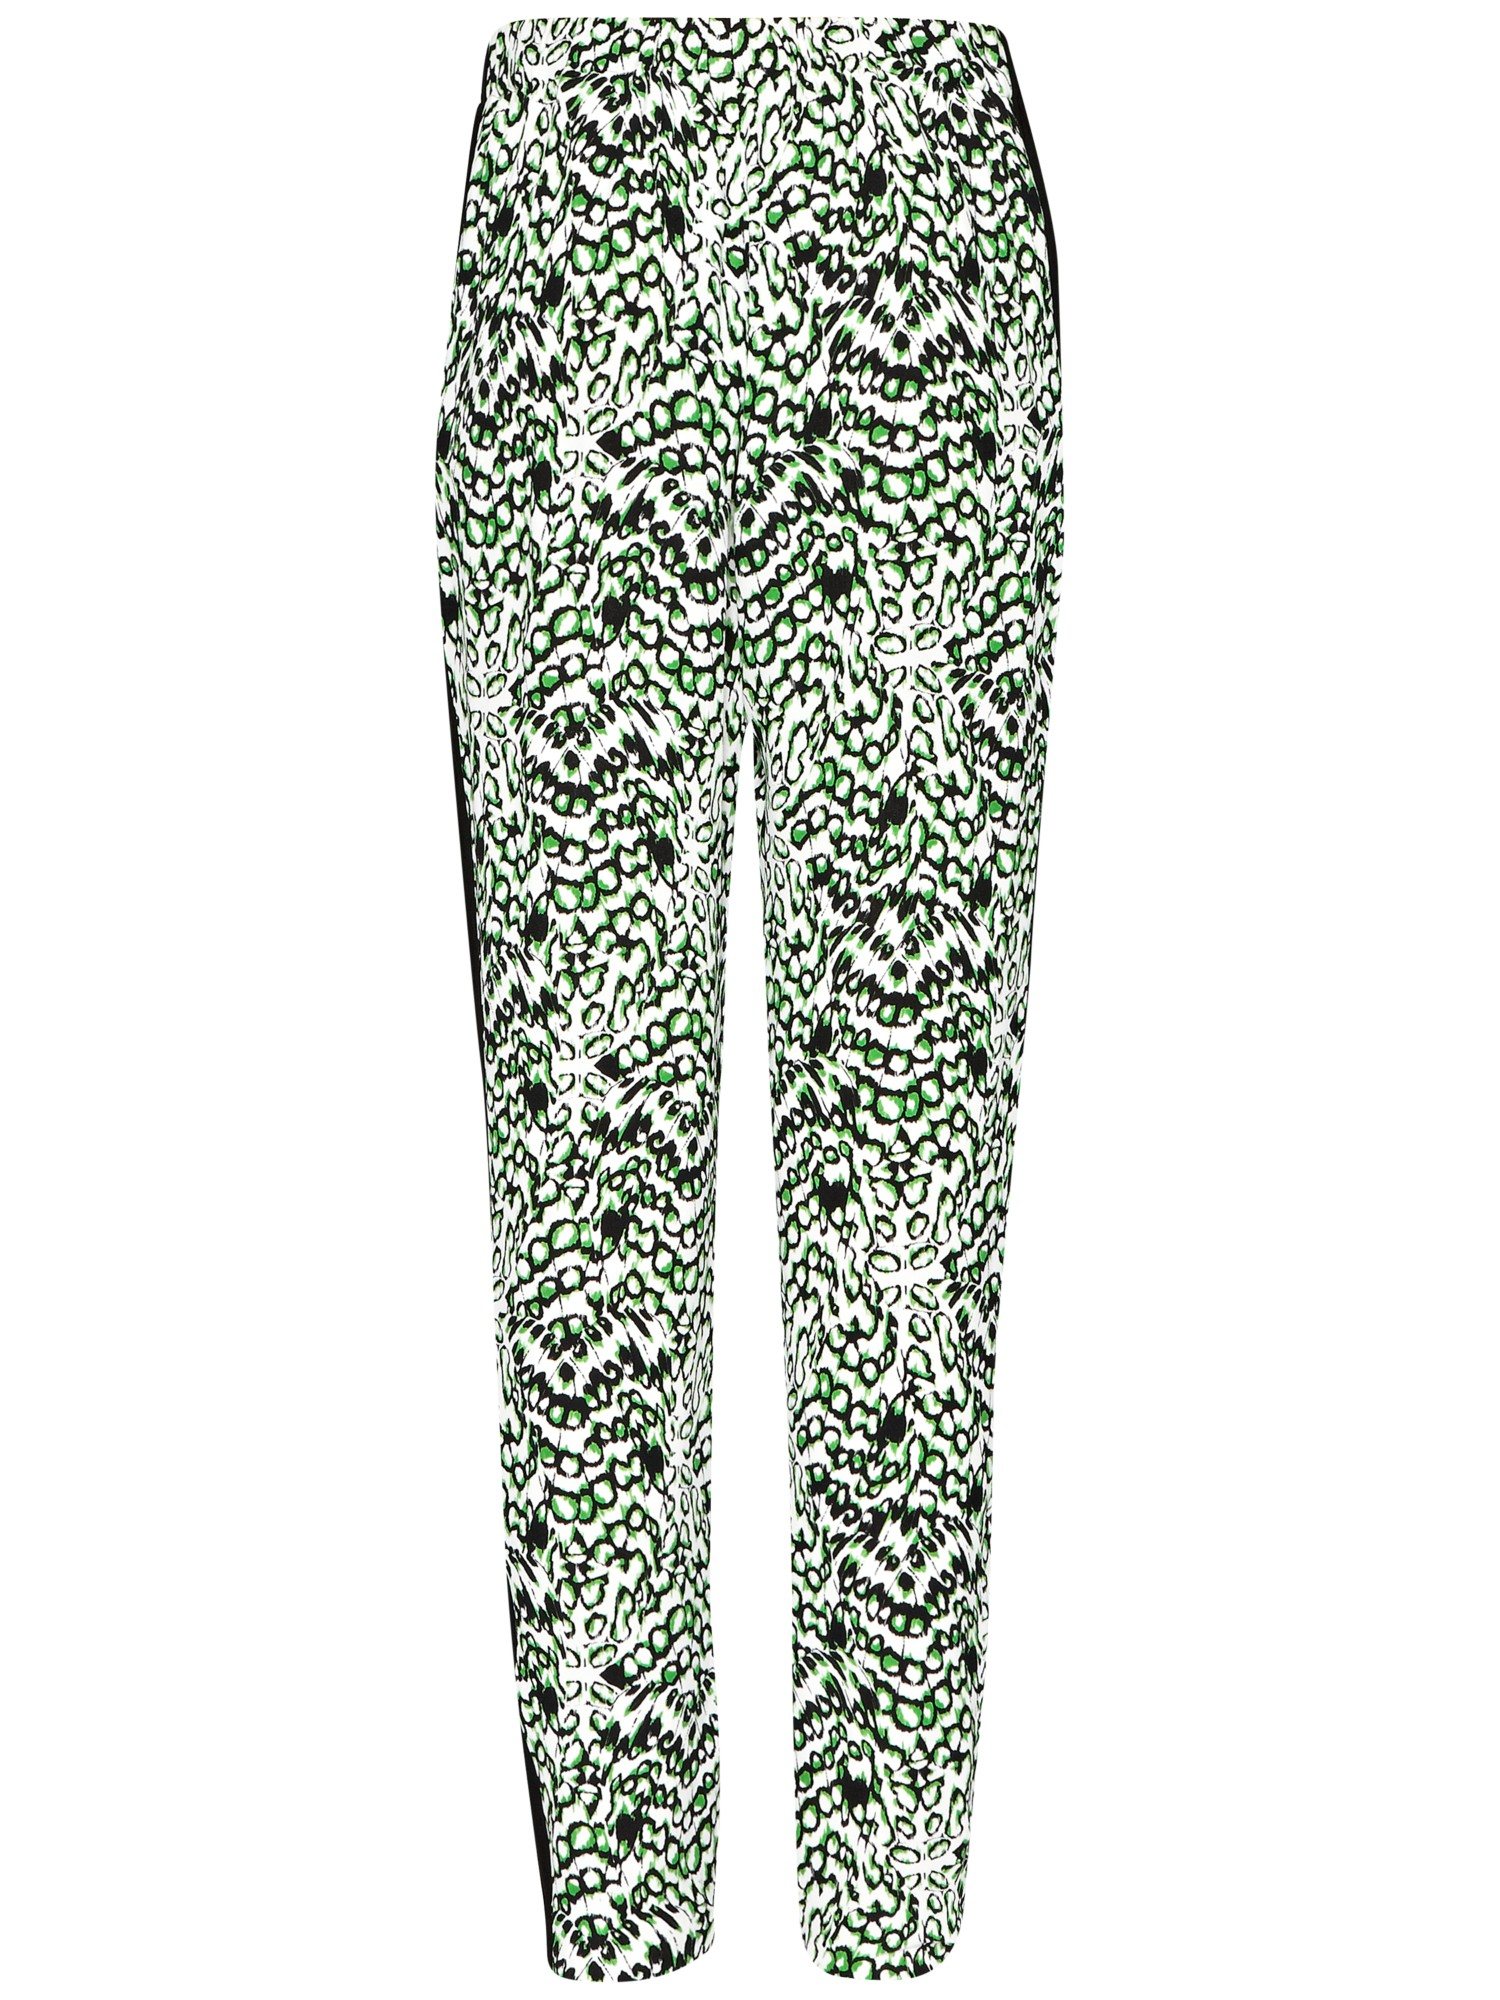 958d1721df2e French Connection Leopard Print Trousers in Green - Lyst